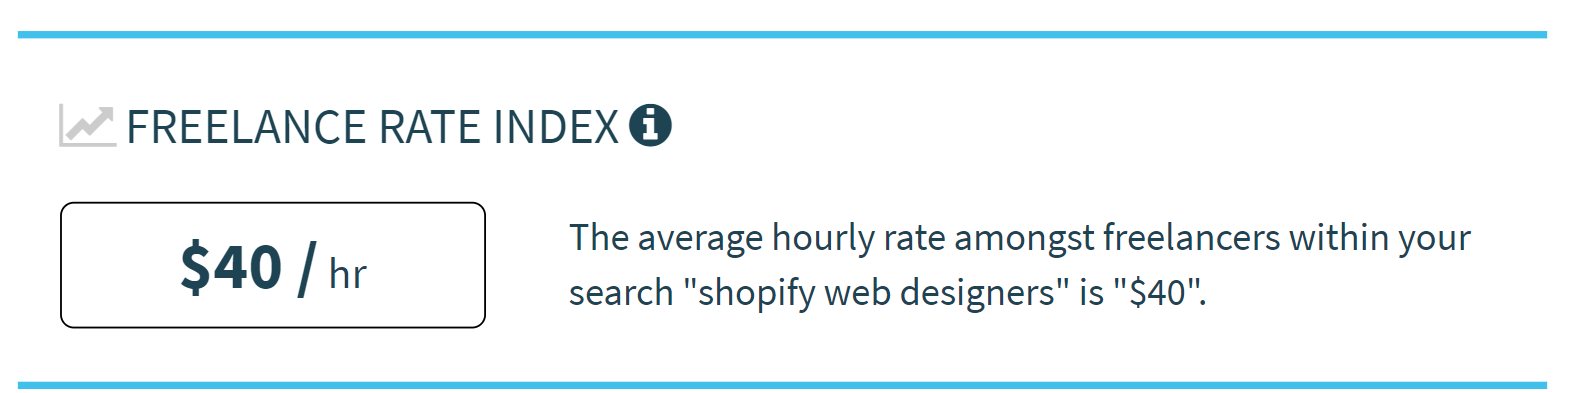 Average hourly rate for a Shopify freelance web designer